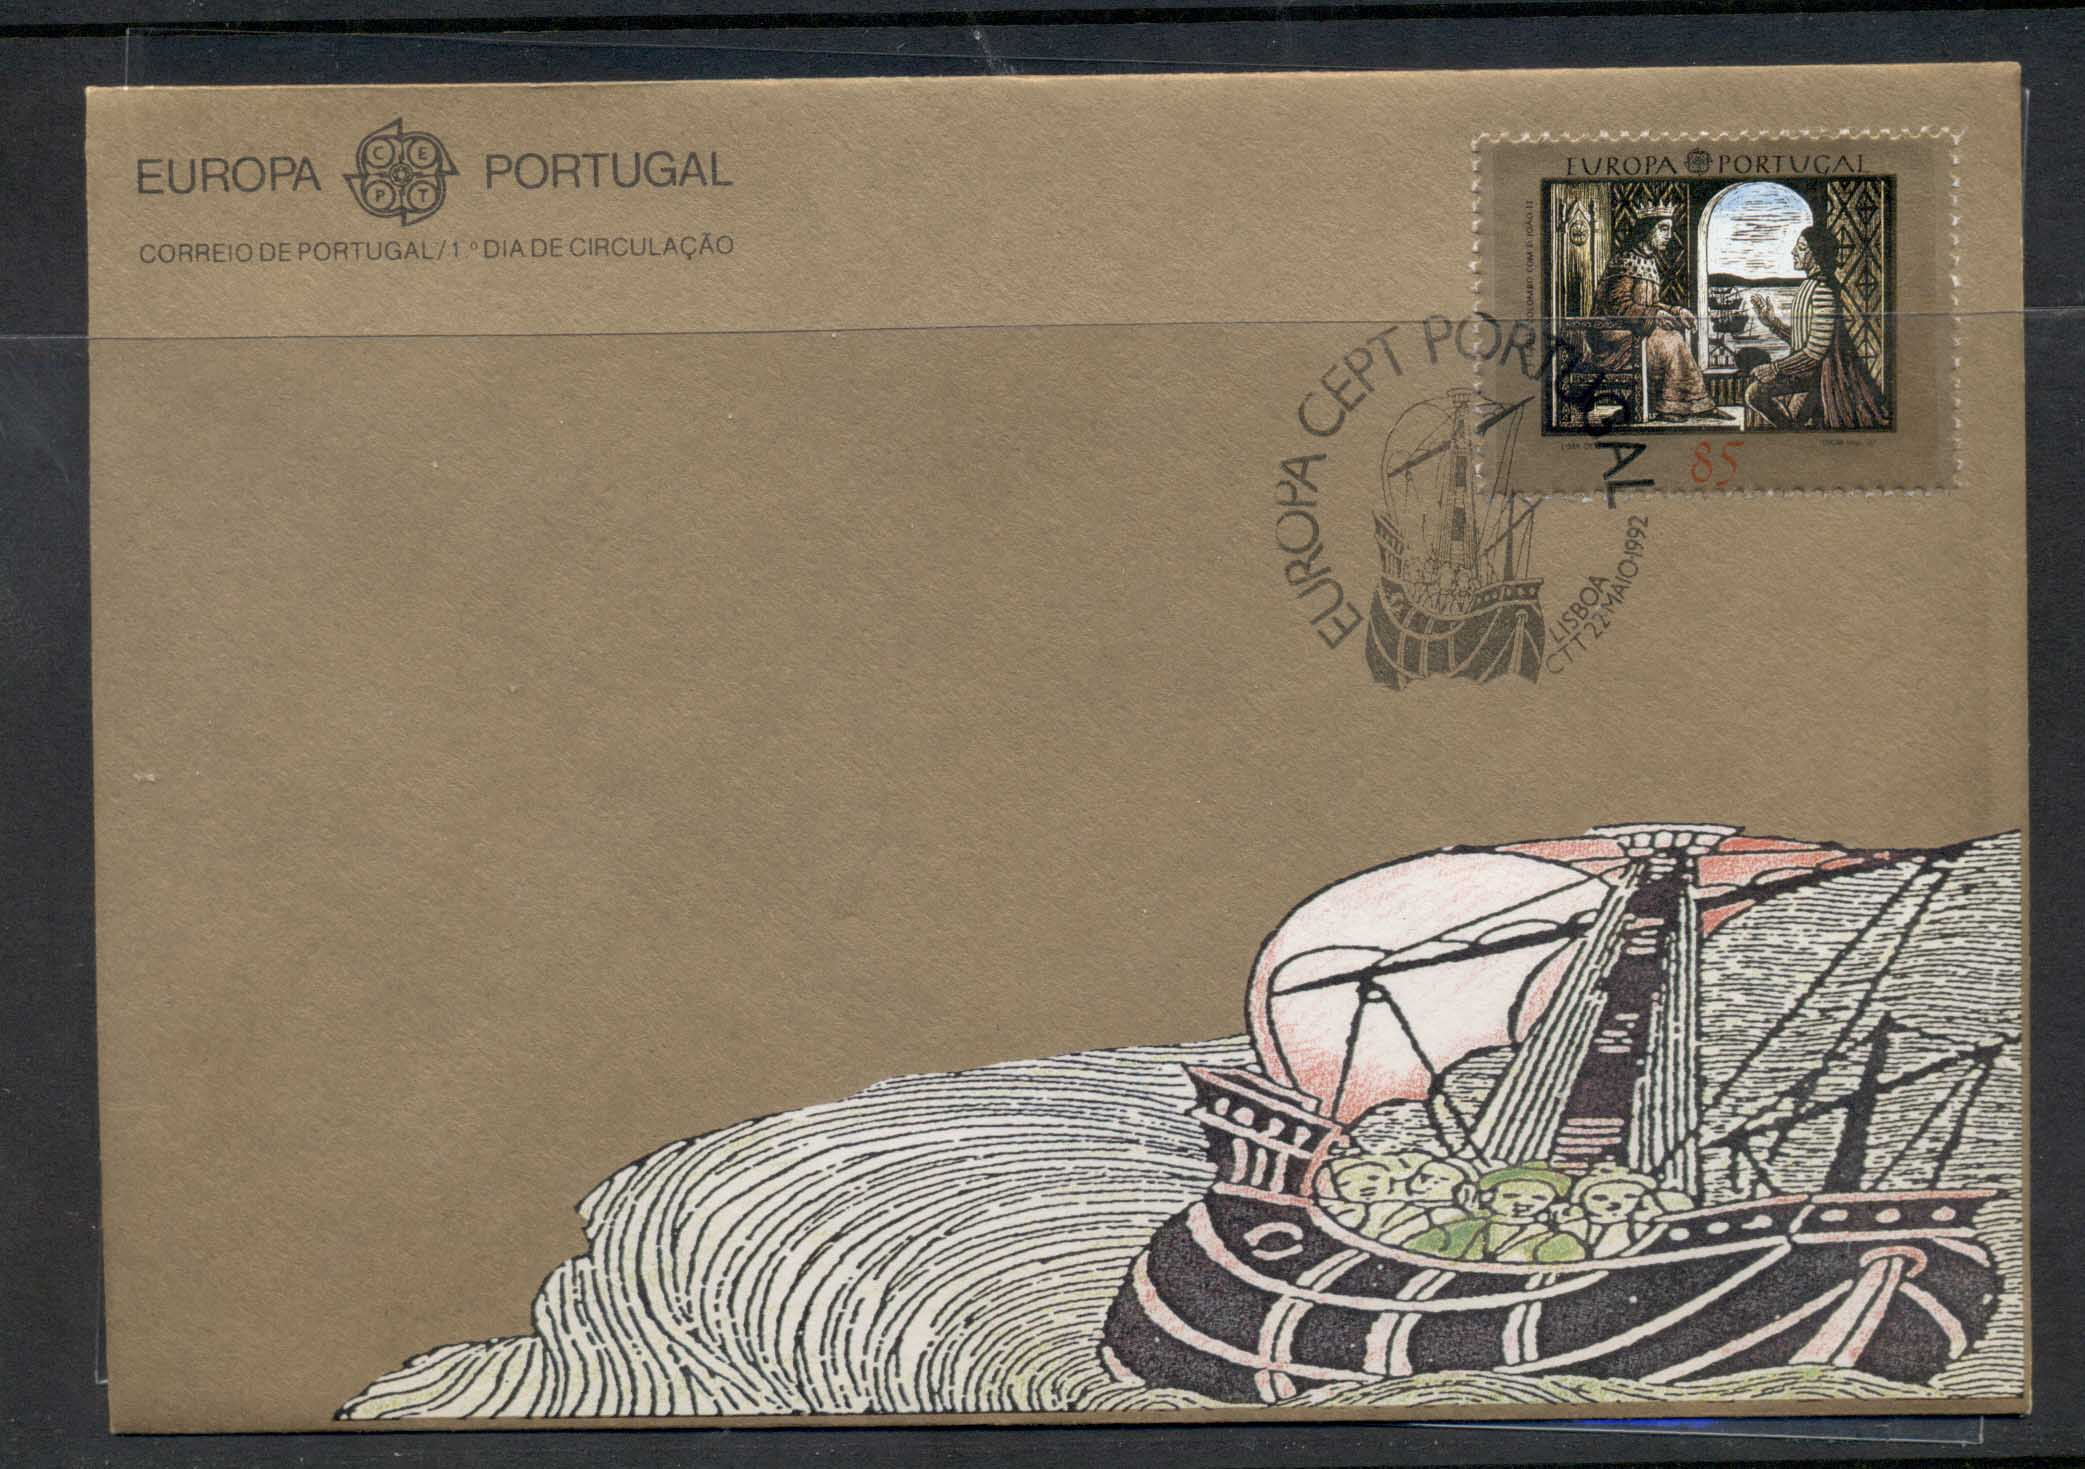 Portugal 1992 Europa Columbus Discovery of America FDC